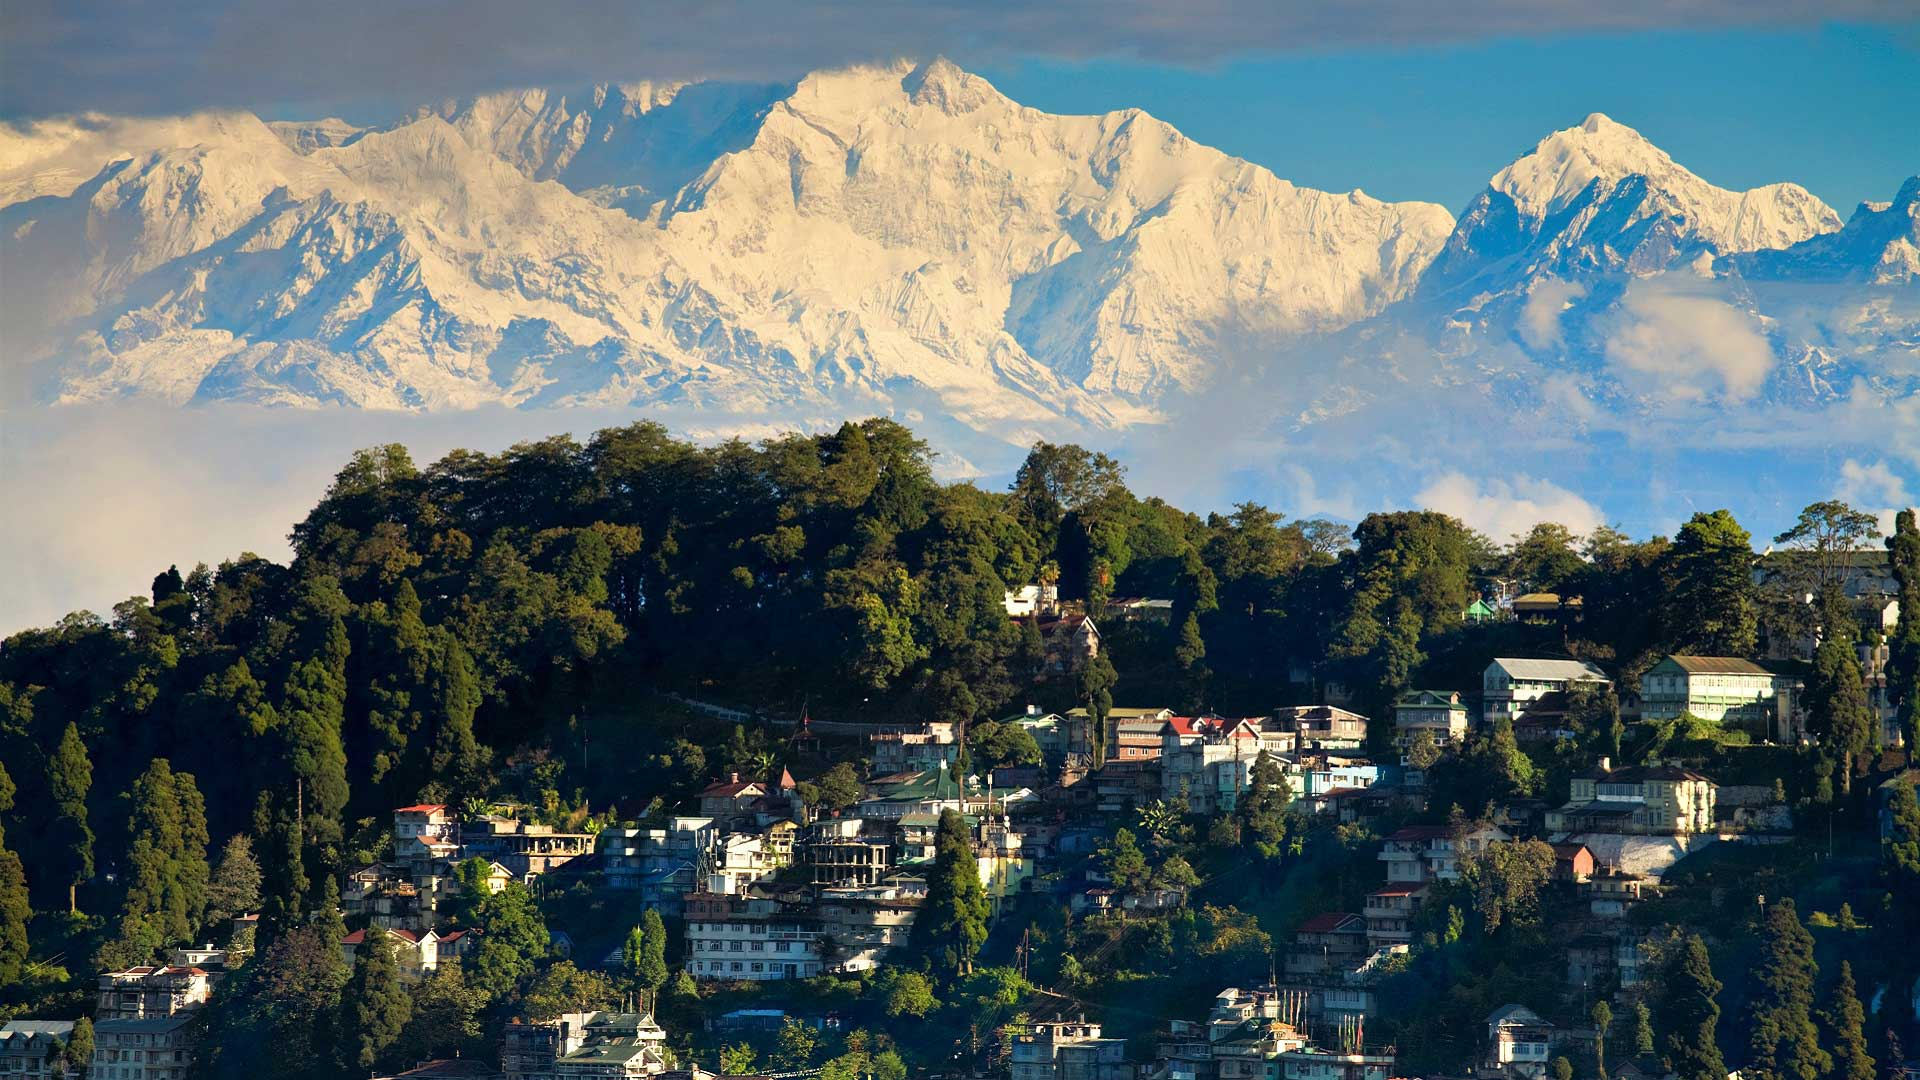 The town of Darjeeling perches on a hillside, with Mount Kanchenjunga behind in India with GeoEx.